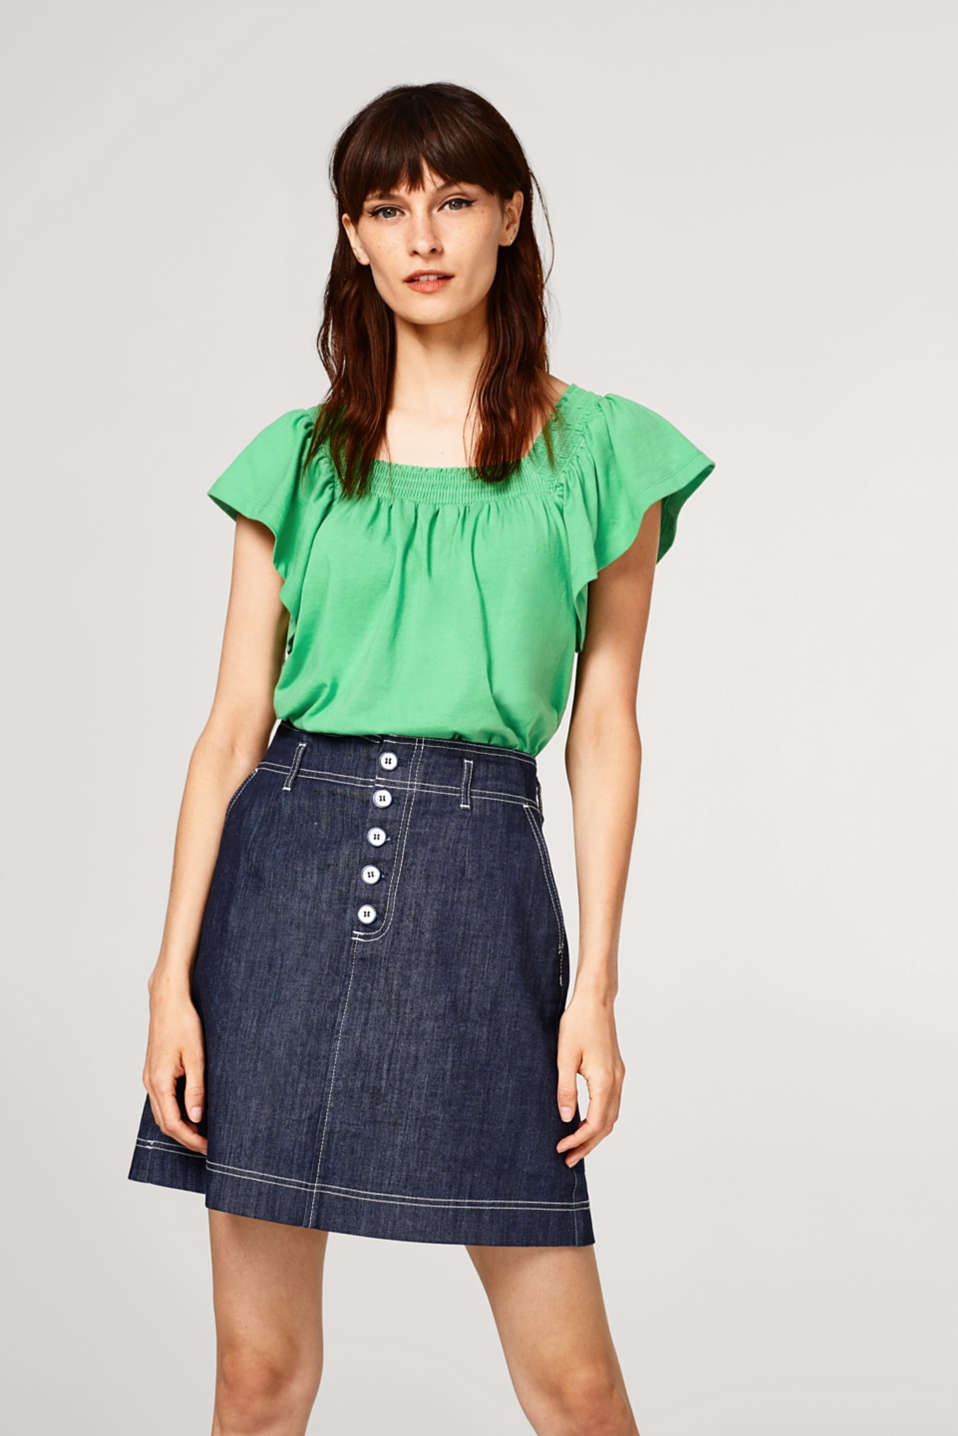 Esprit - Square neckline T-shirt with cap sleeves